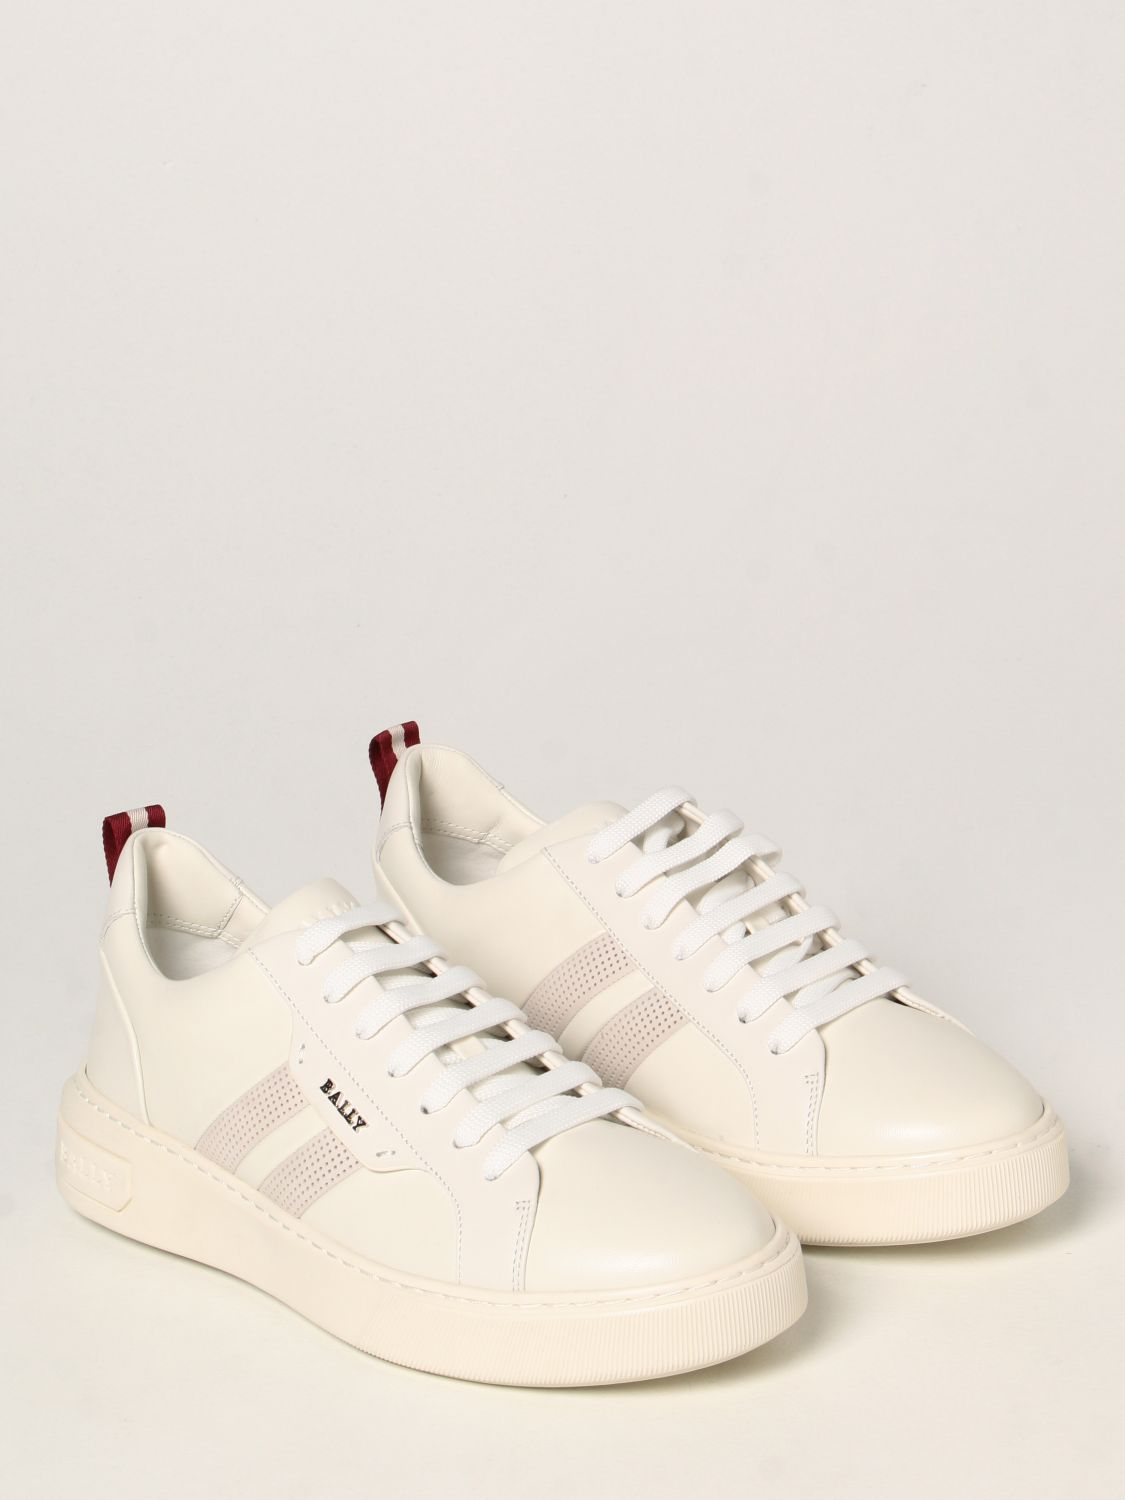 Sneakers Bally: Maxim Bally sneakers in leather white 2